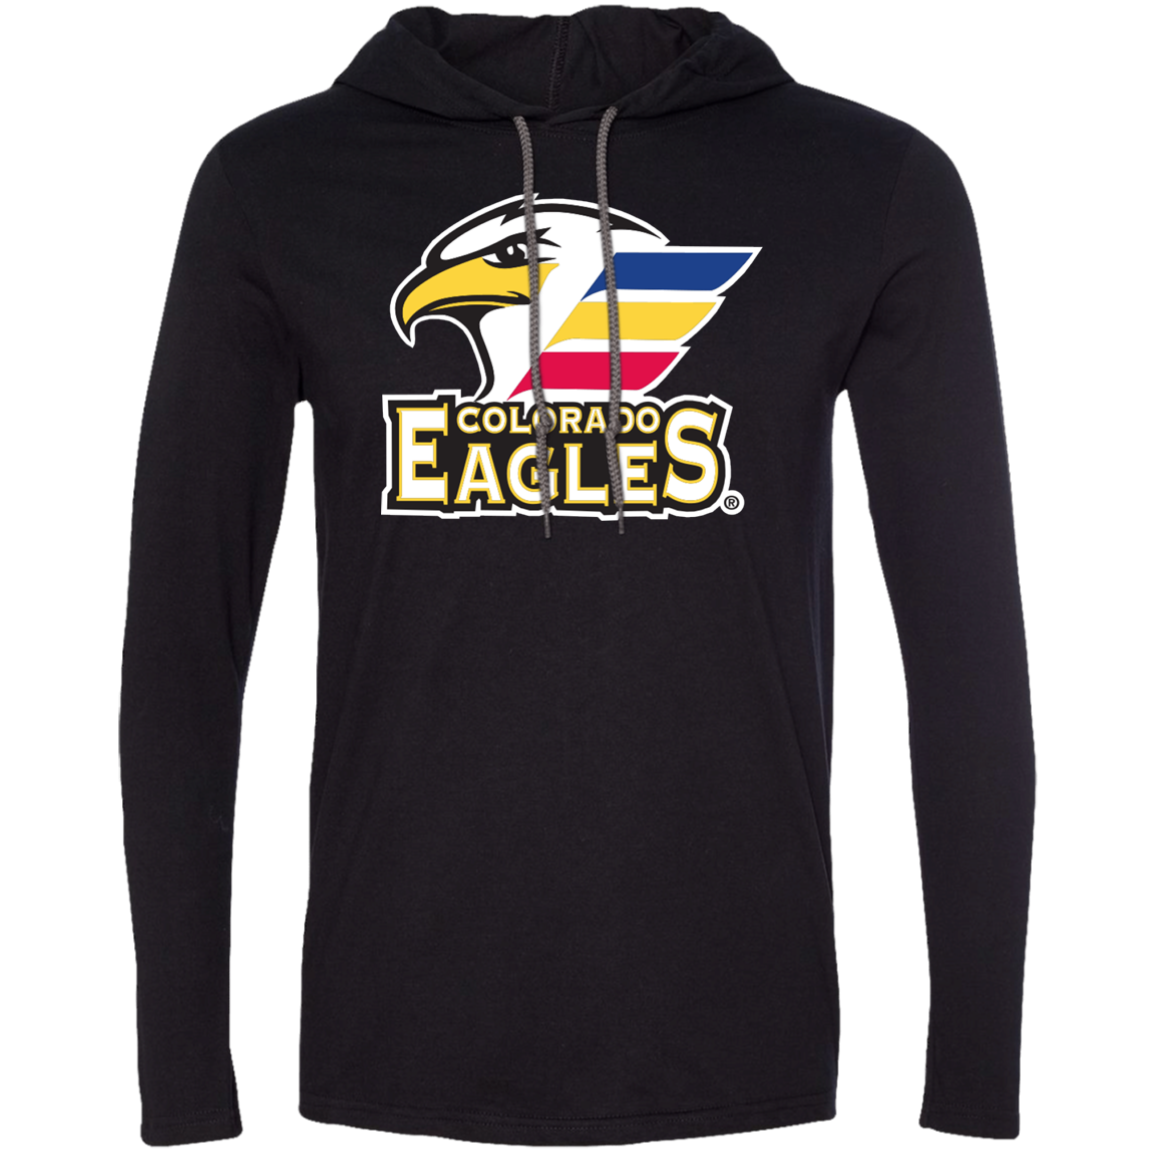 Colorado Eagles Primary Logo Adult Long Sleeve T Shirt Hoodie